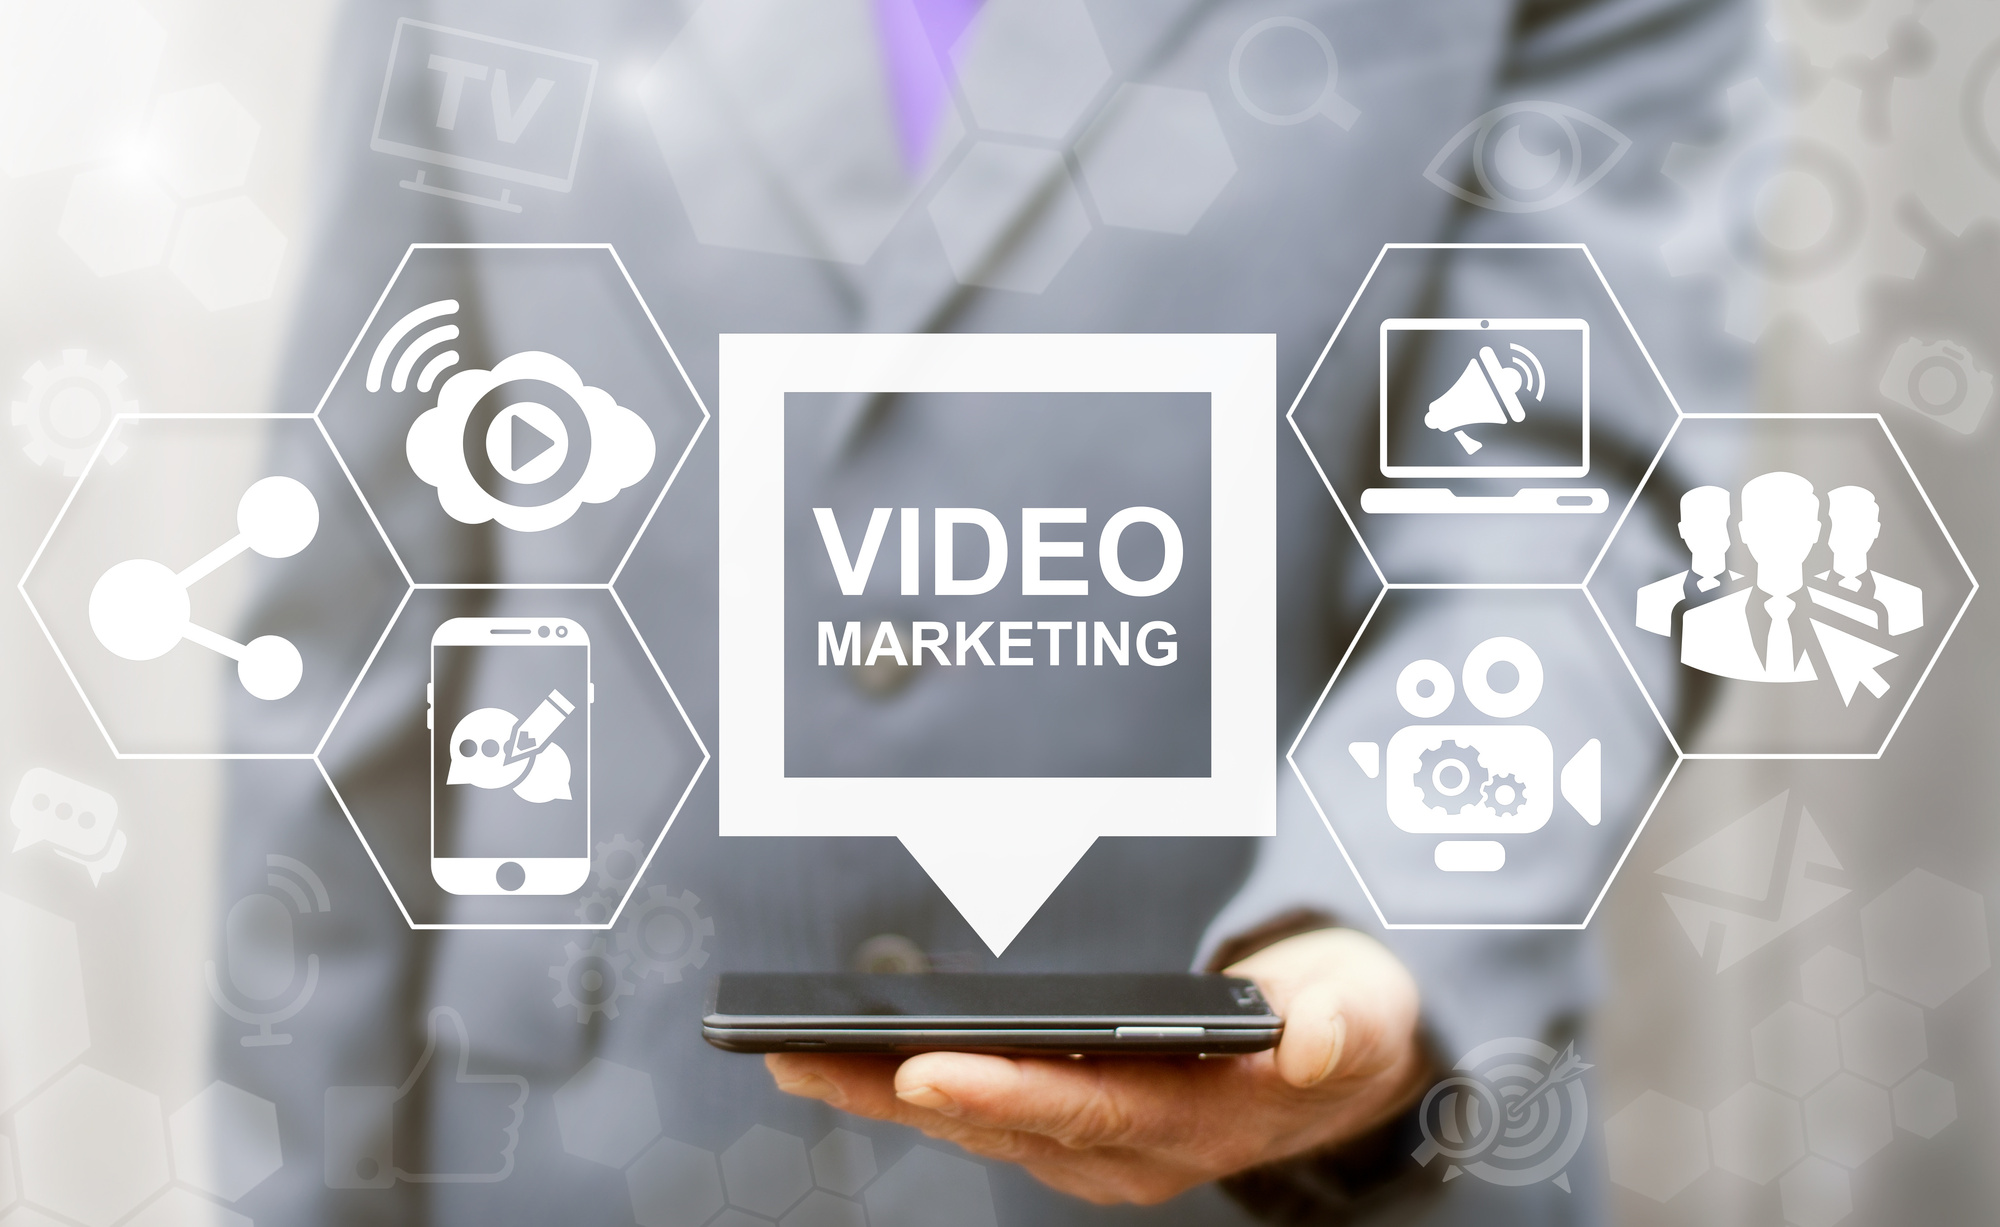 Video Marketing Visualized